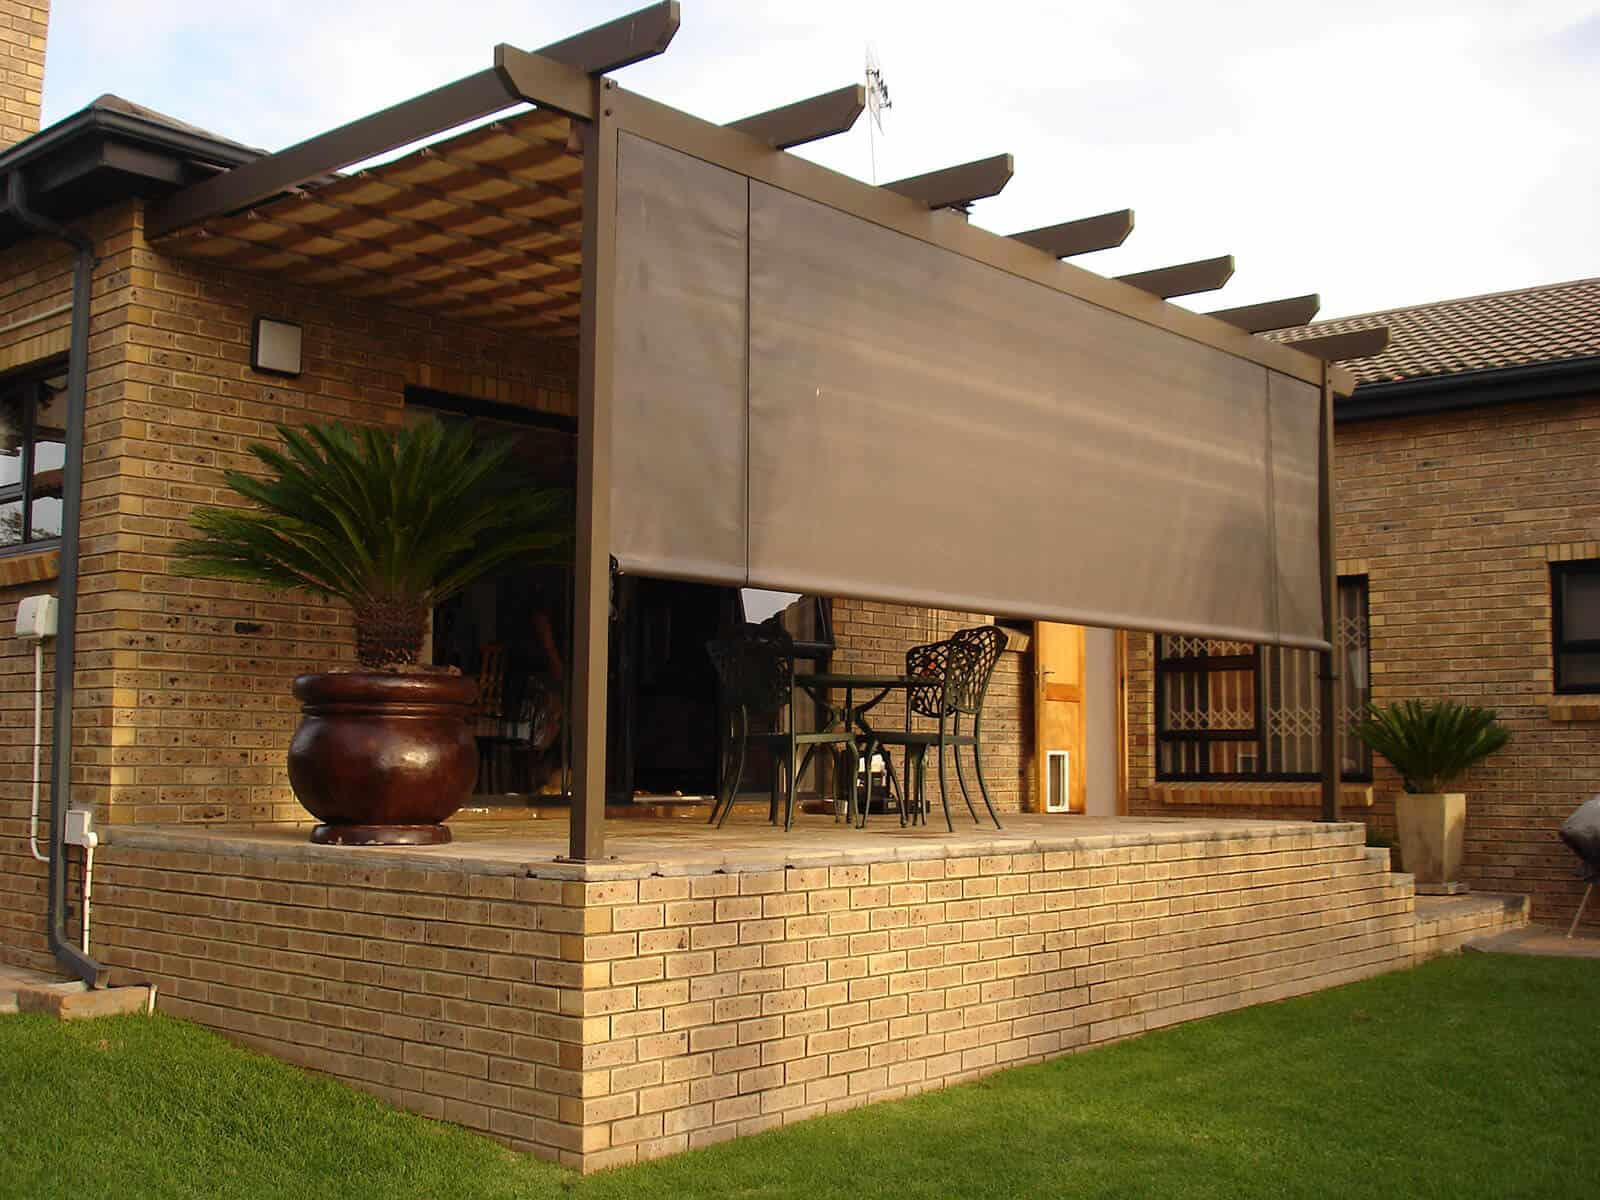 Light Steel Frame Structures Cape Town South Africa: Proport - In Business Since 1986